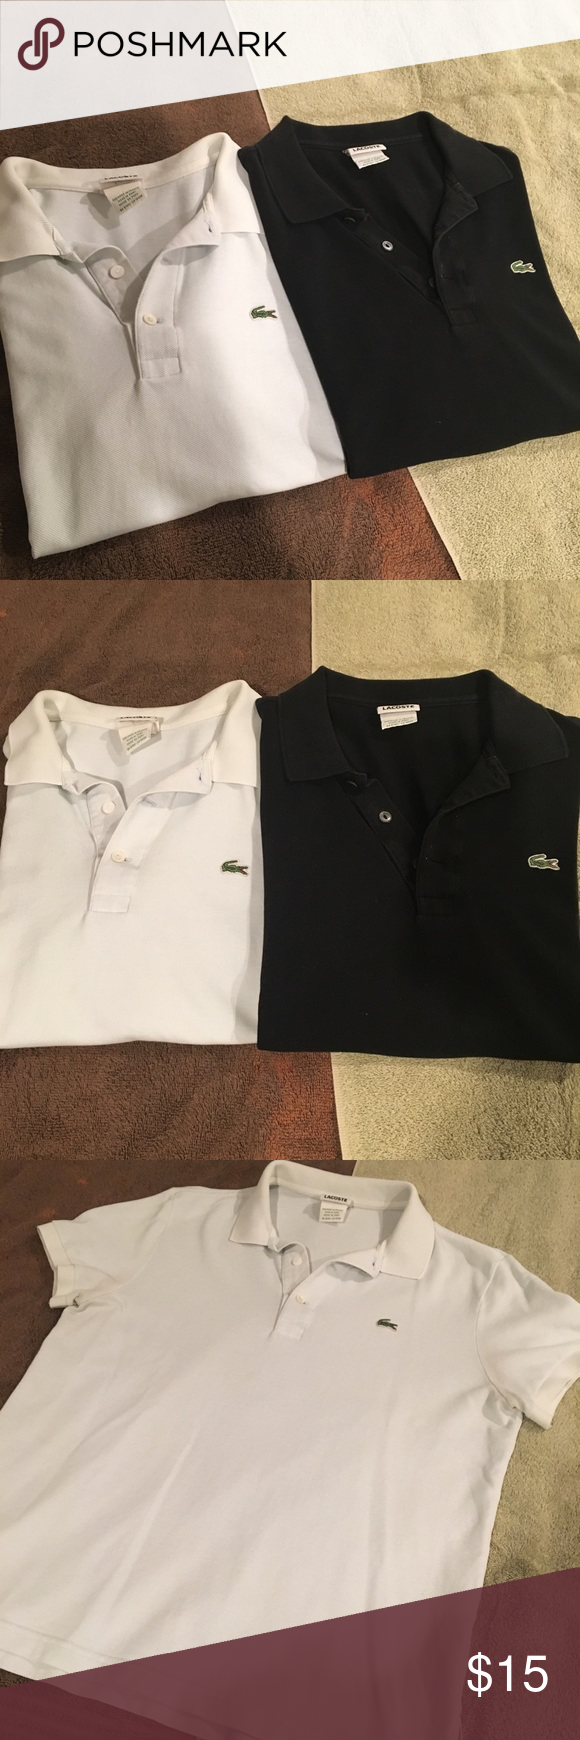 45438ce3a68547 Lacoste Polo Shirts Amazon – EDGE Engineering and Consulting Limited